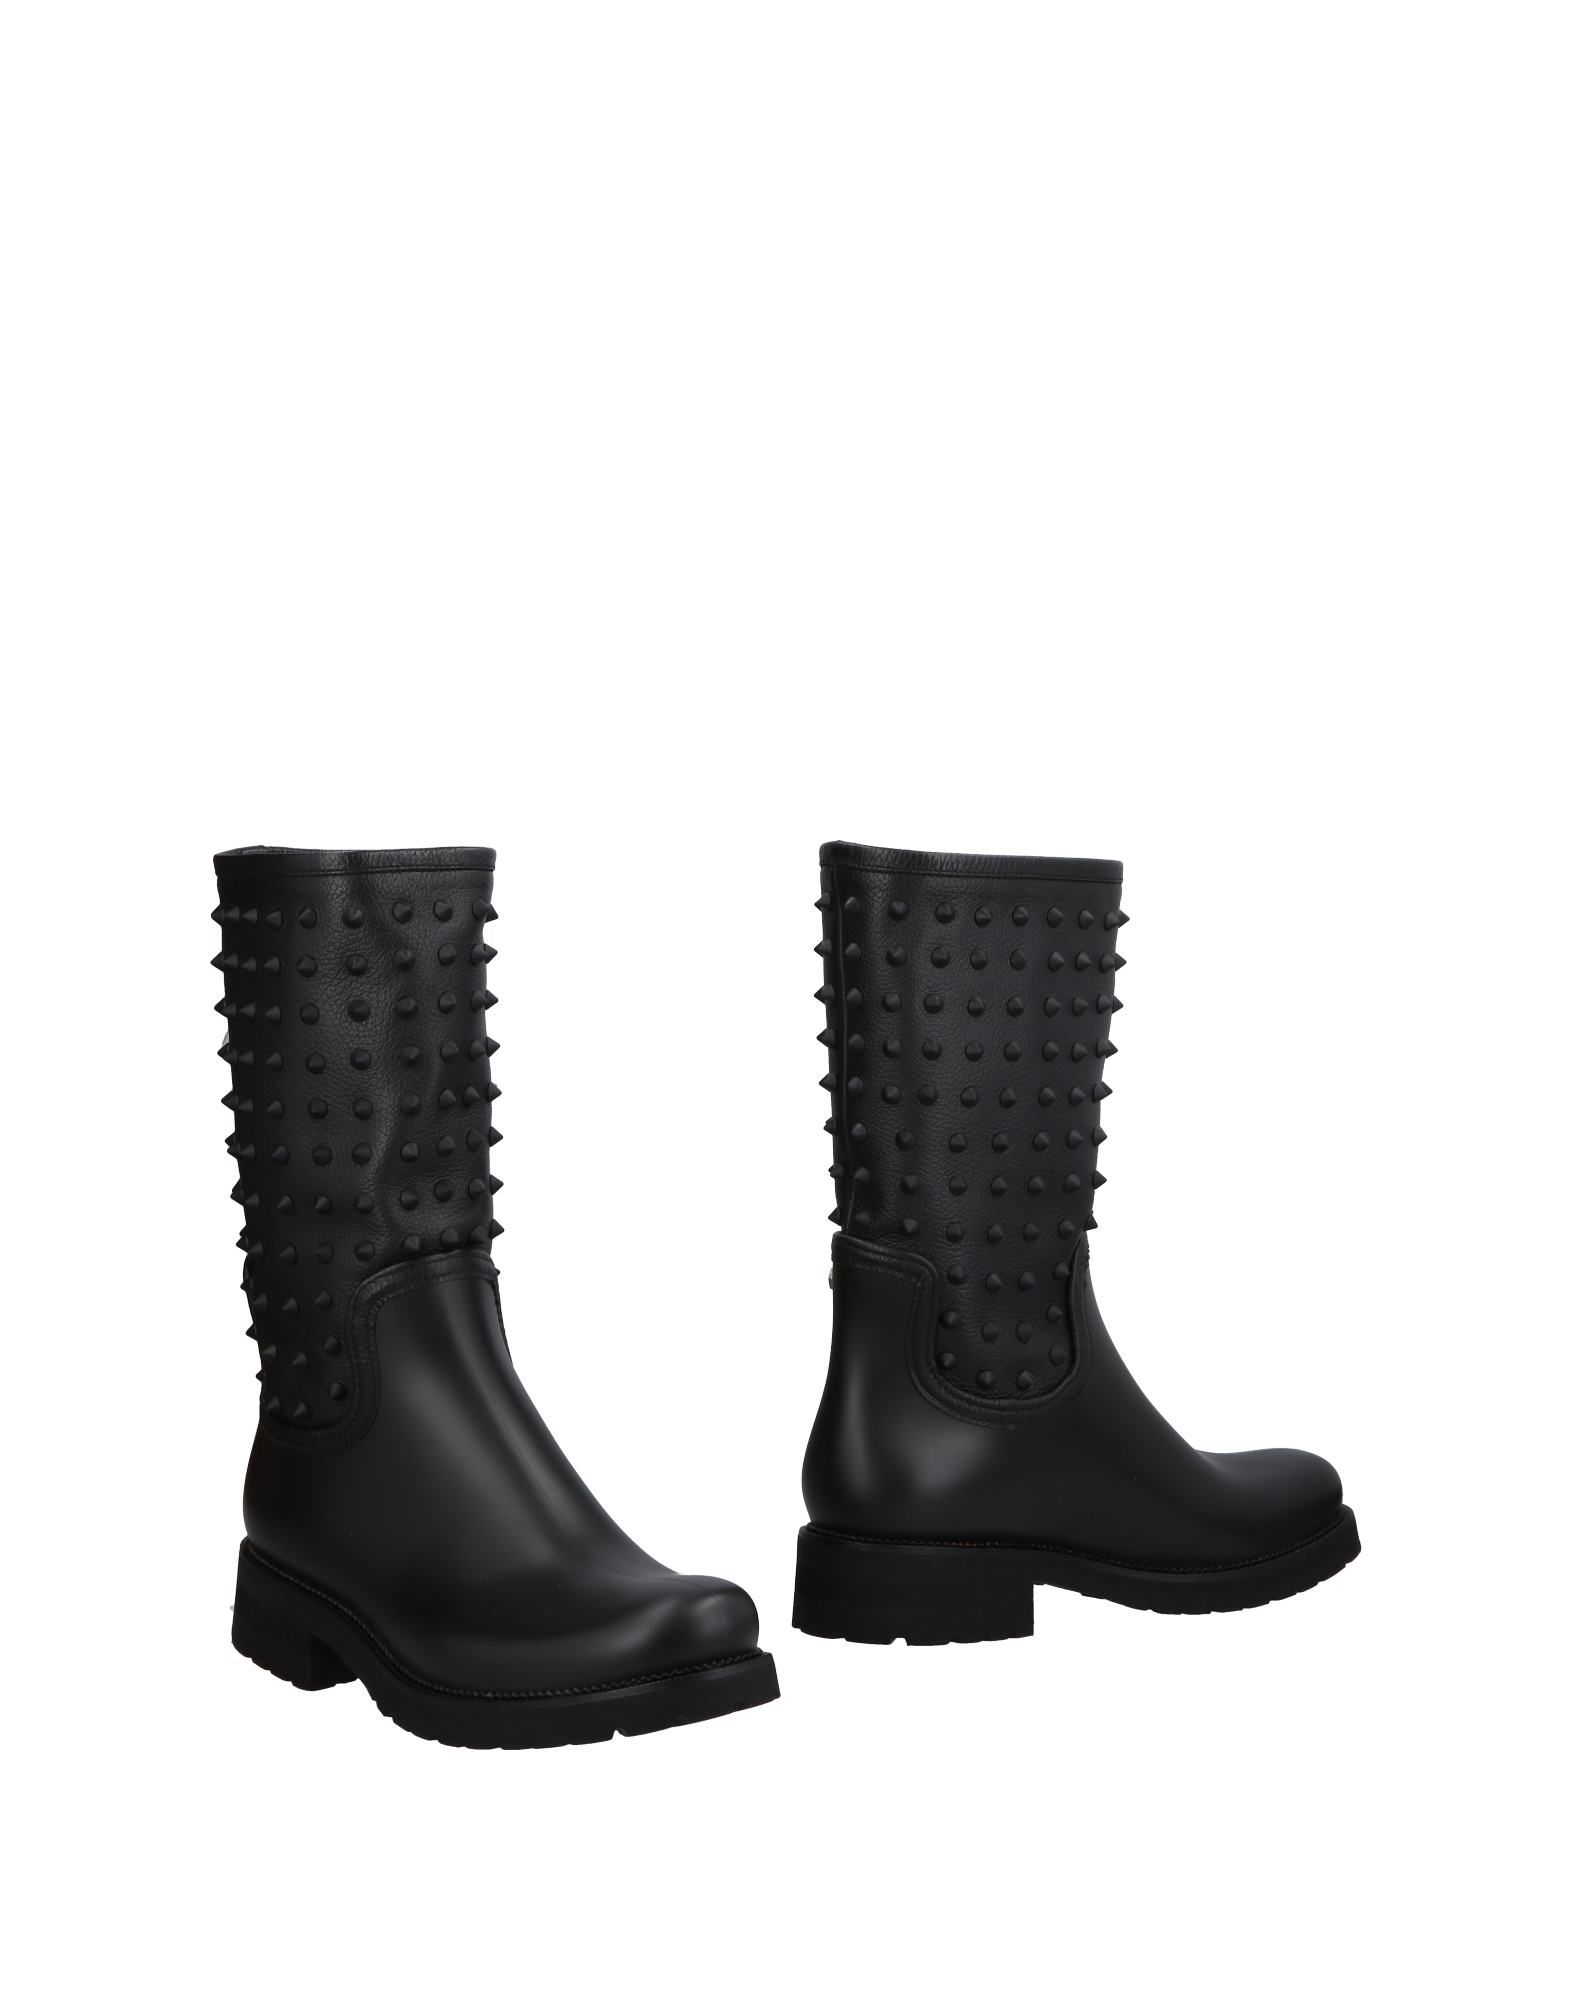 Philipp Plein Boots Boots Boots - Men Philipp Plein Boots online on  Canada - 11487894AL 4e04cd